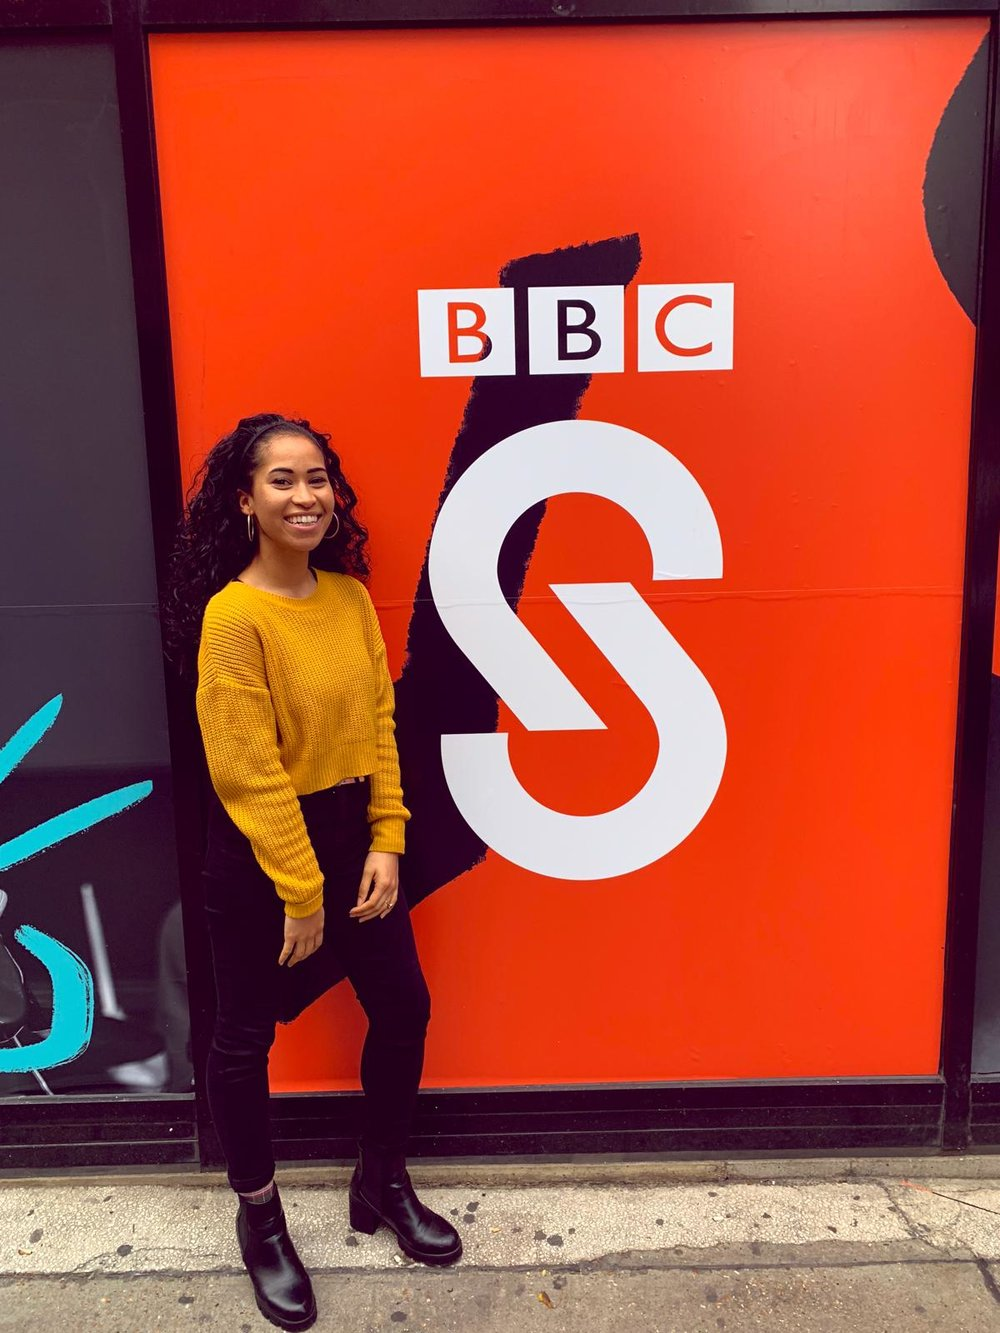 BBC SOUNDS - Swarzy is the official young voice of BBC Sounds, voicing all adverts and trails across BBC radio platforms (national, regional, and local), the BBC Sounds app, and BBC TV.